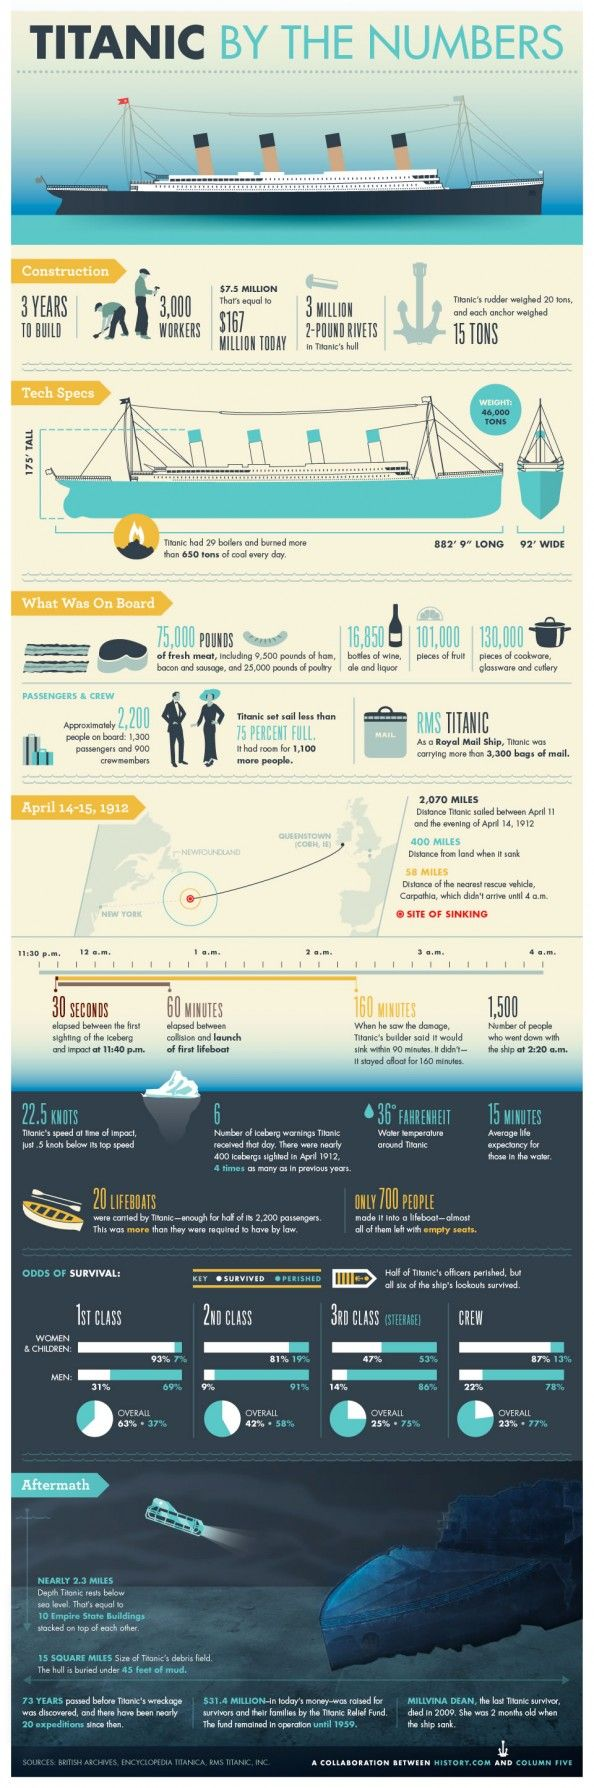 Titanic By the Numbers Infographic (for my son who loves the Titanic)